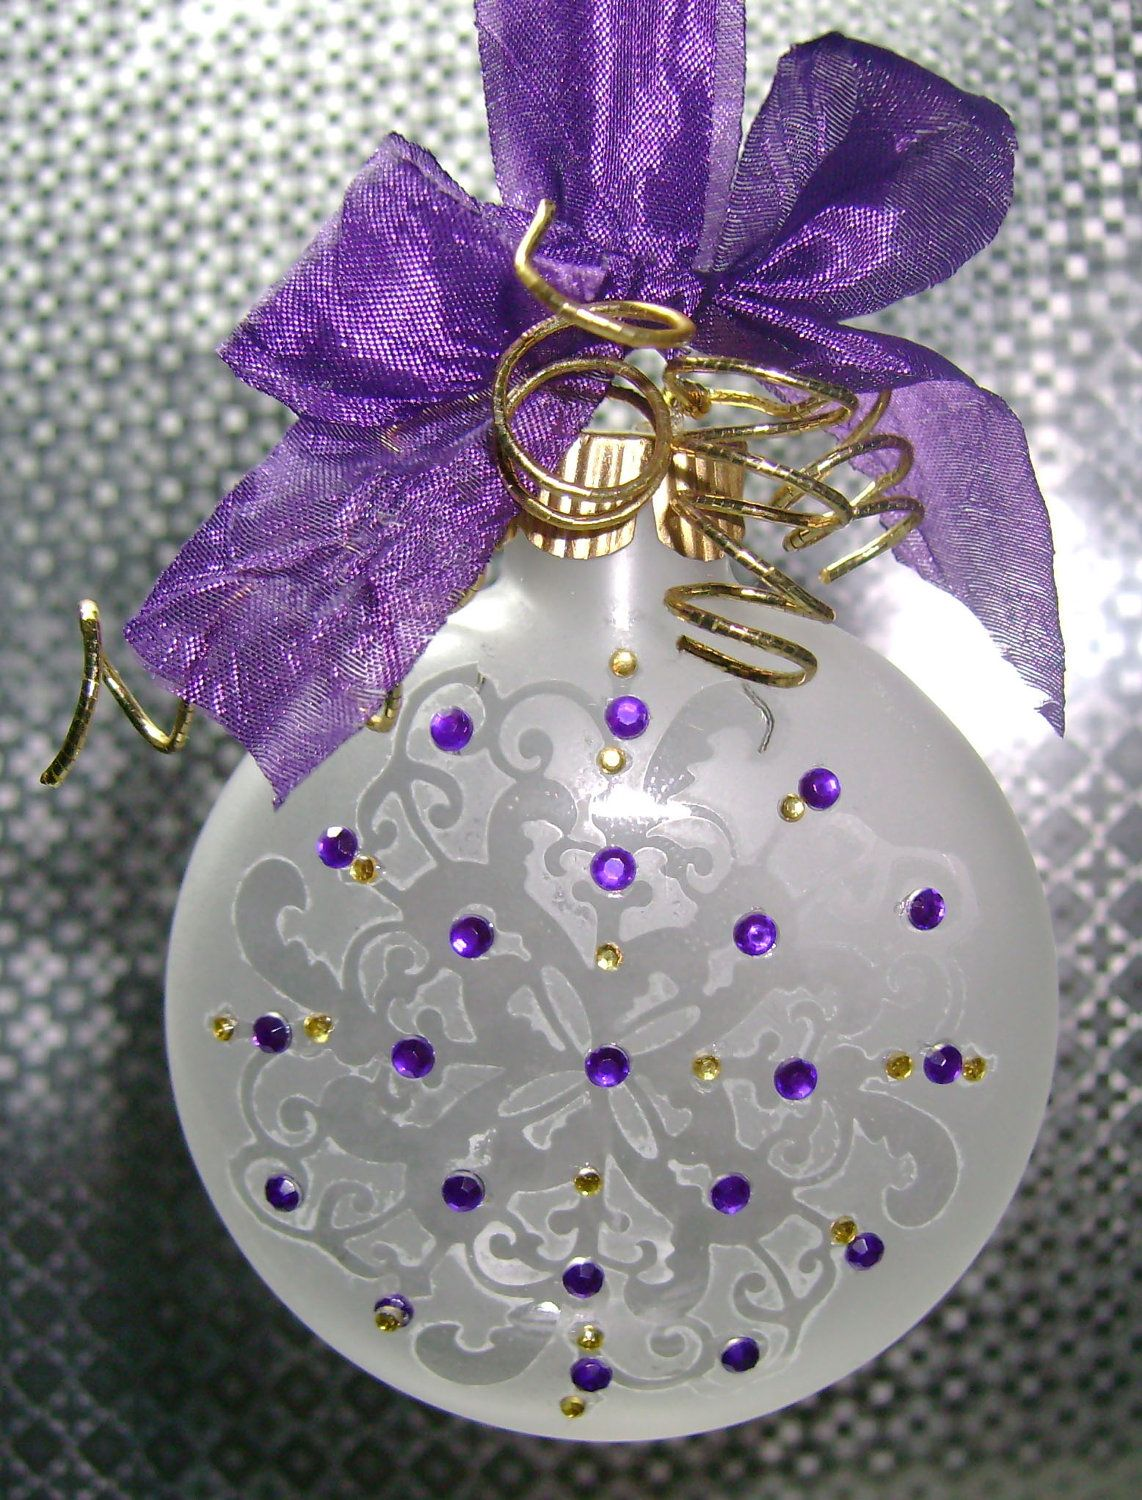 Glue for glass ornaments - Elegant Purple And Gold Etched Glass Ornament